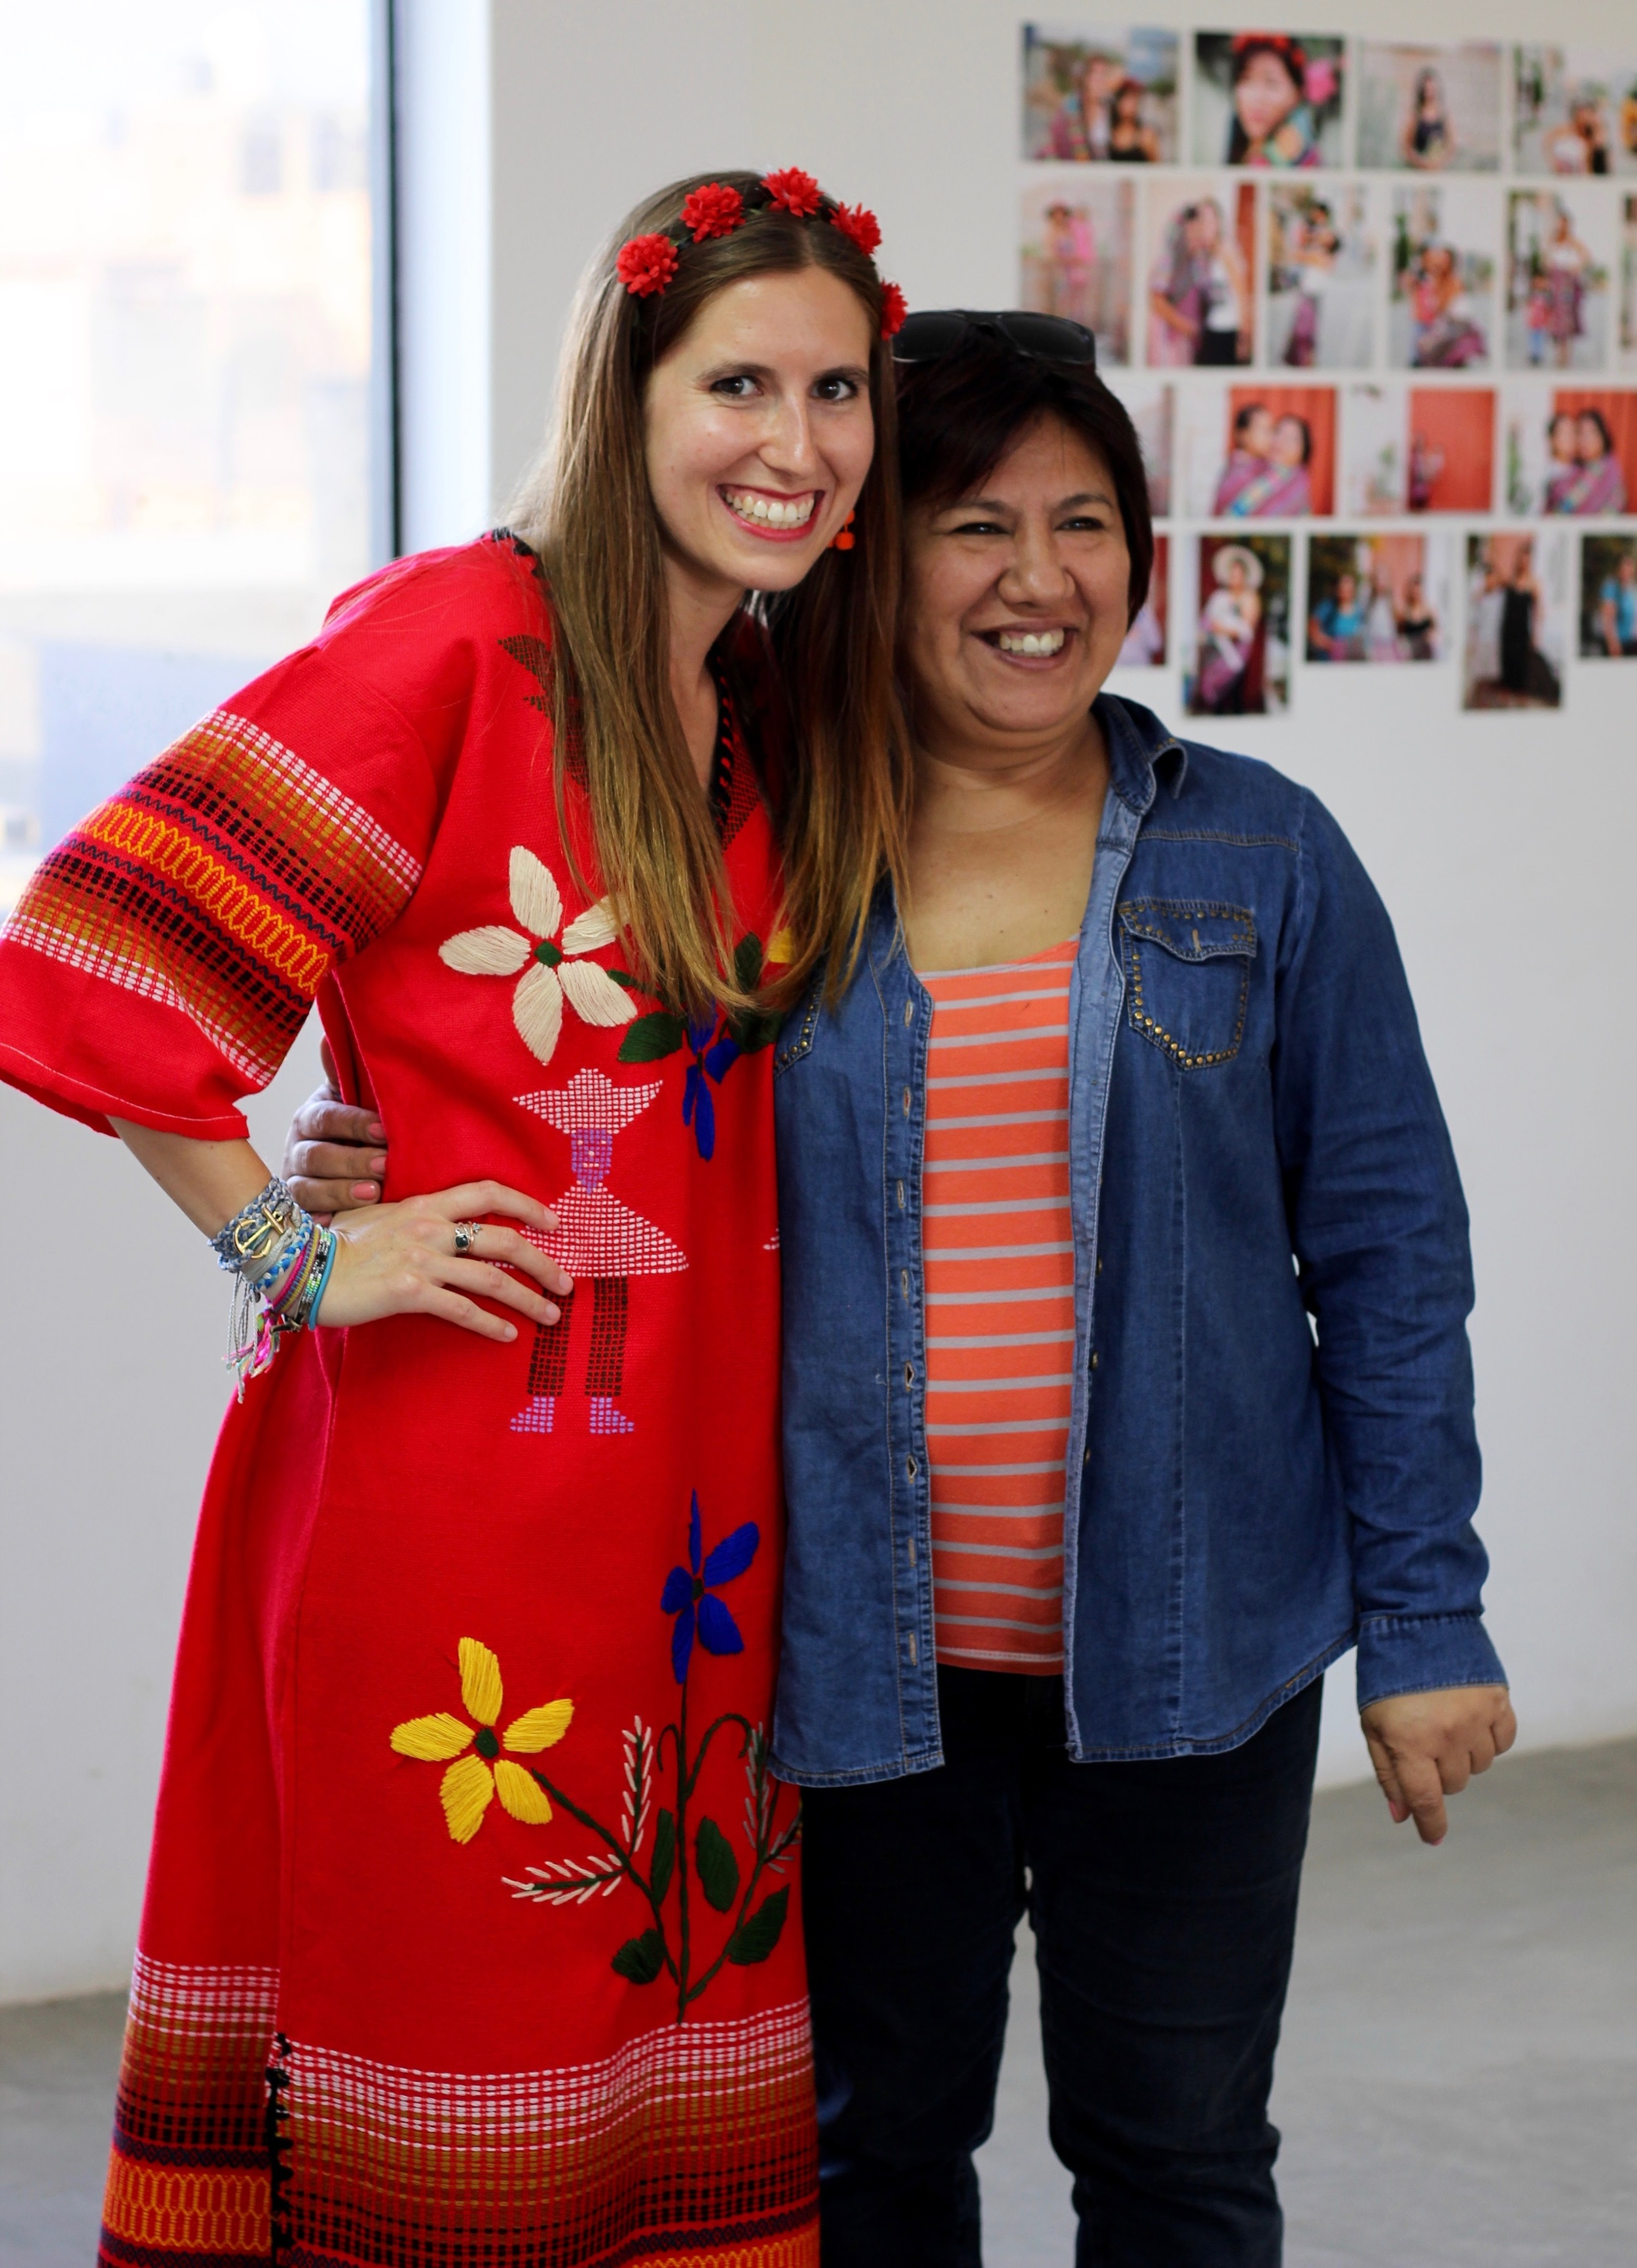 This is Chalbela who gave me this beautiful Peruvian dress!